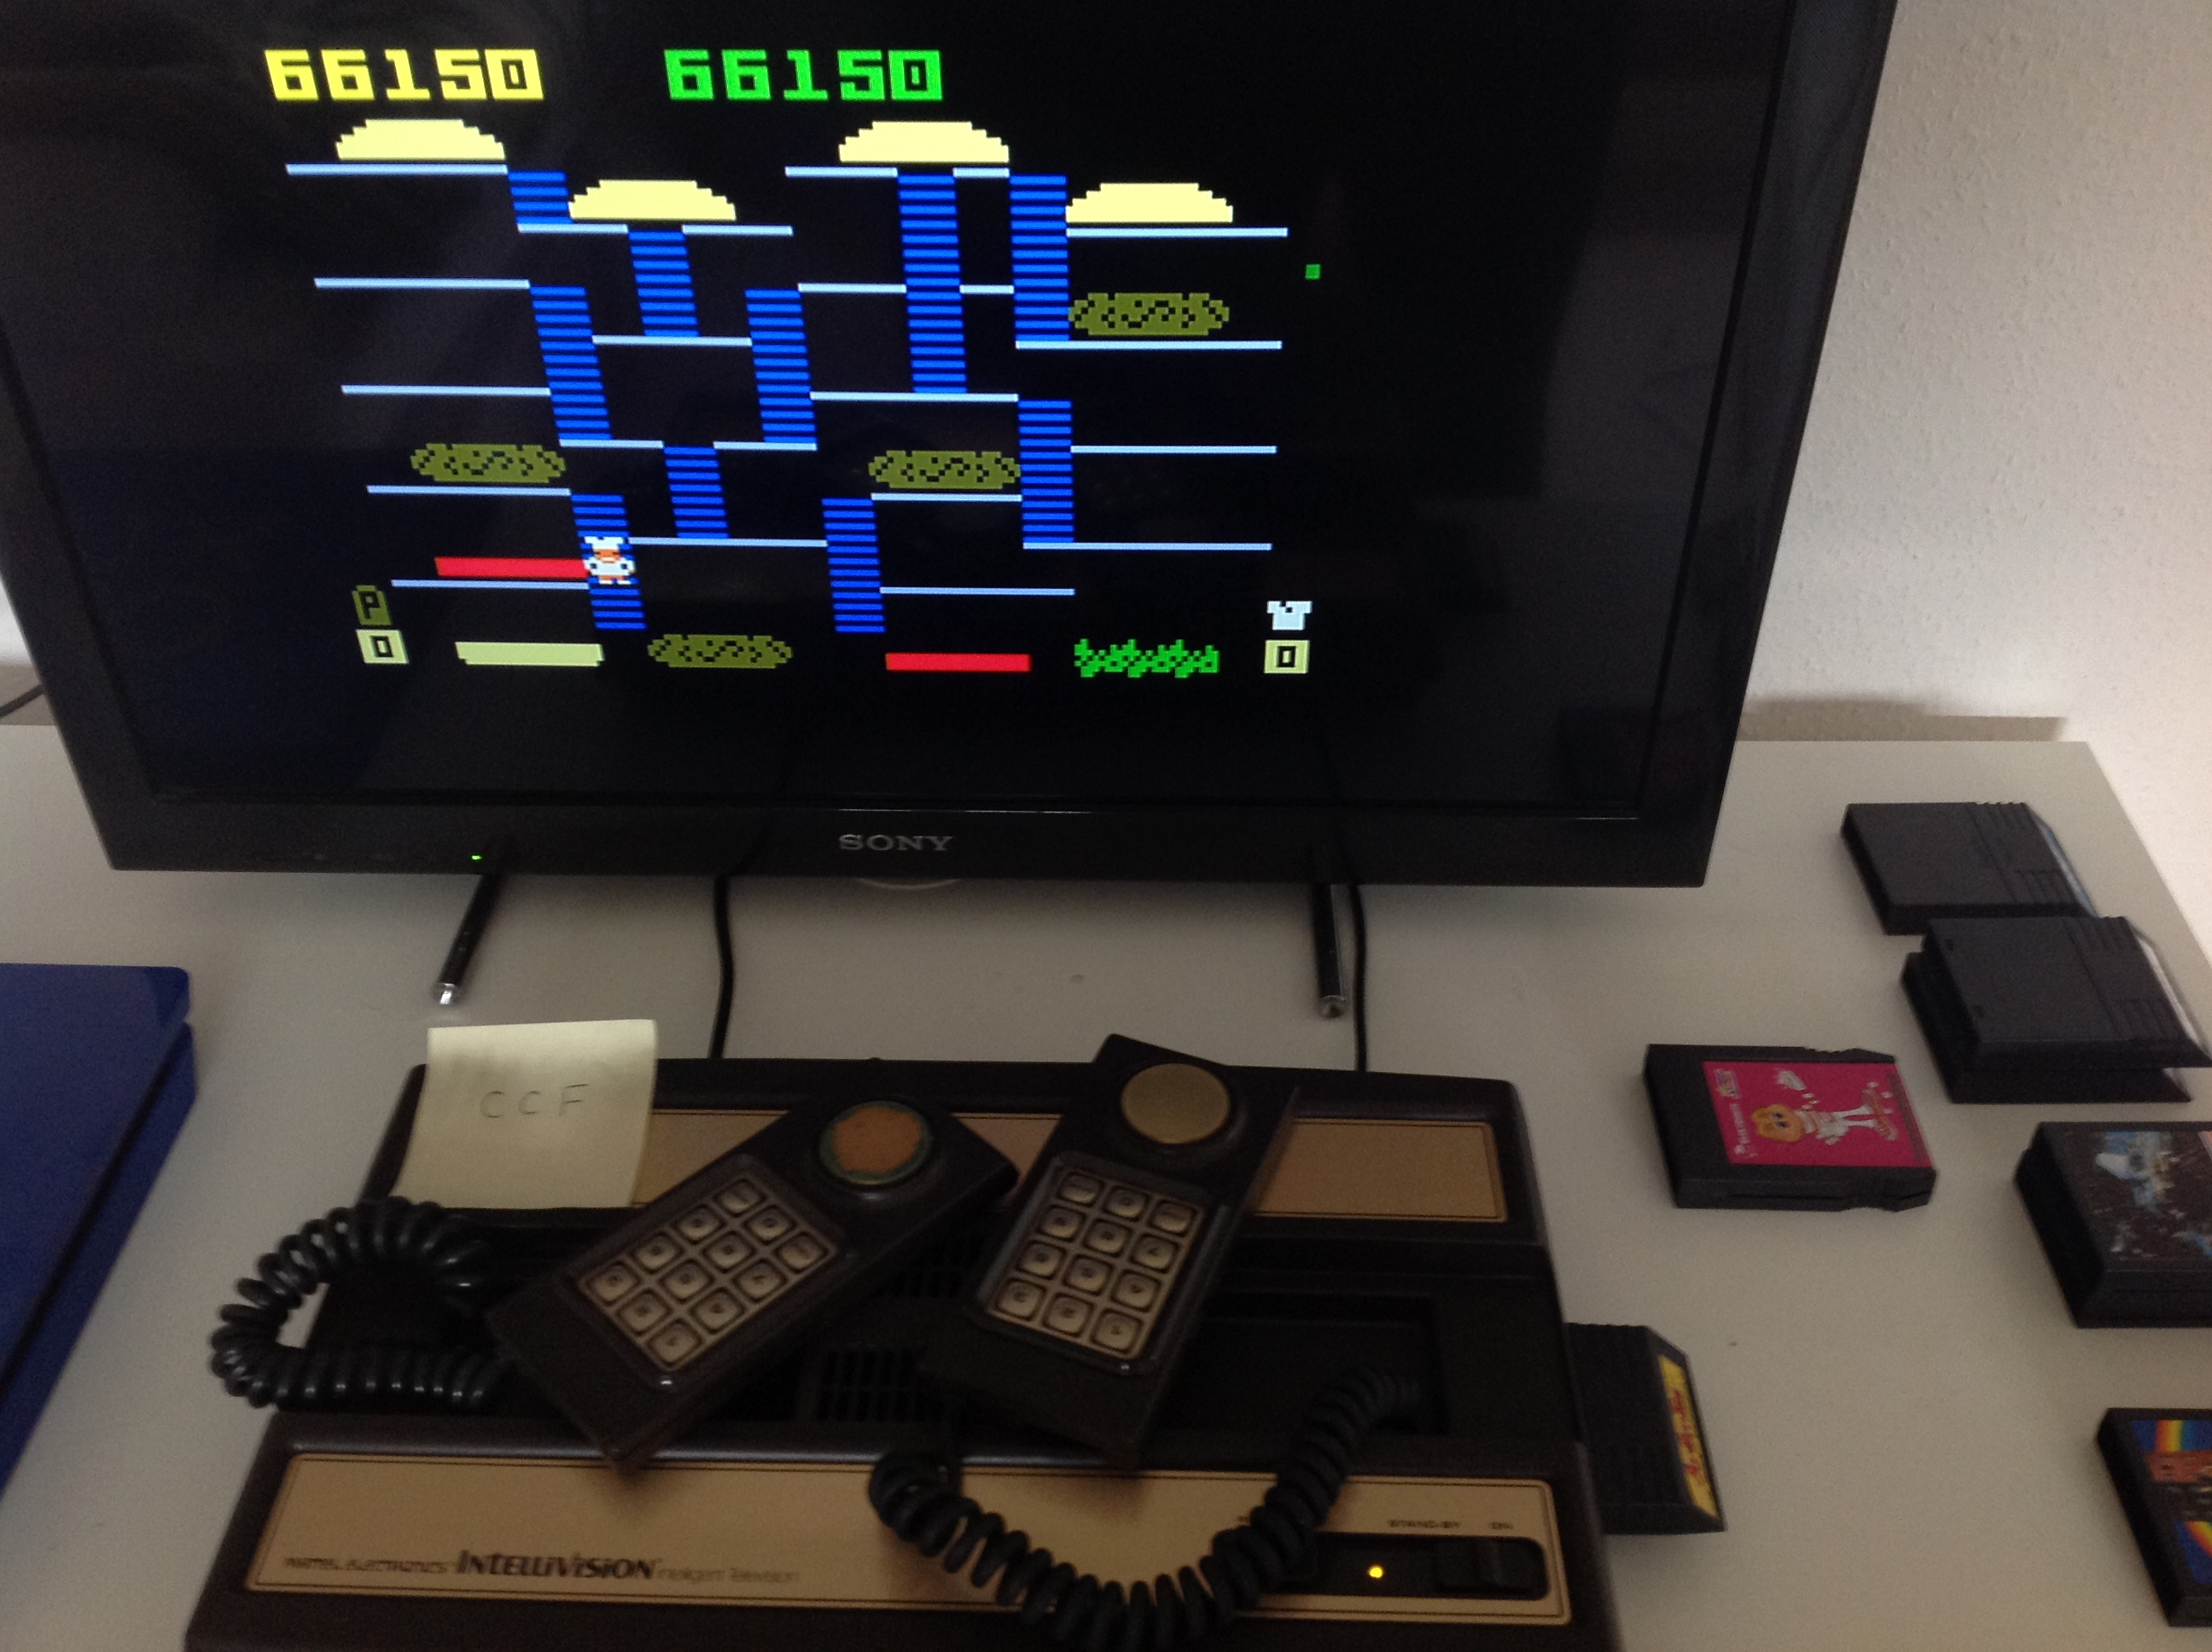 CoCoForest: BurgerTime (Intellivision) 66,150 points on 2018-08-11 09:59:44